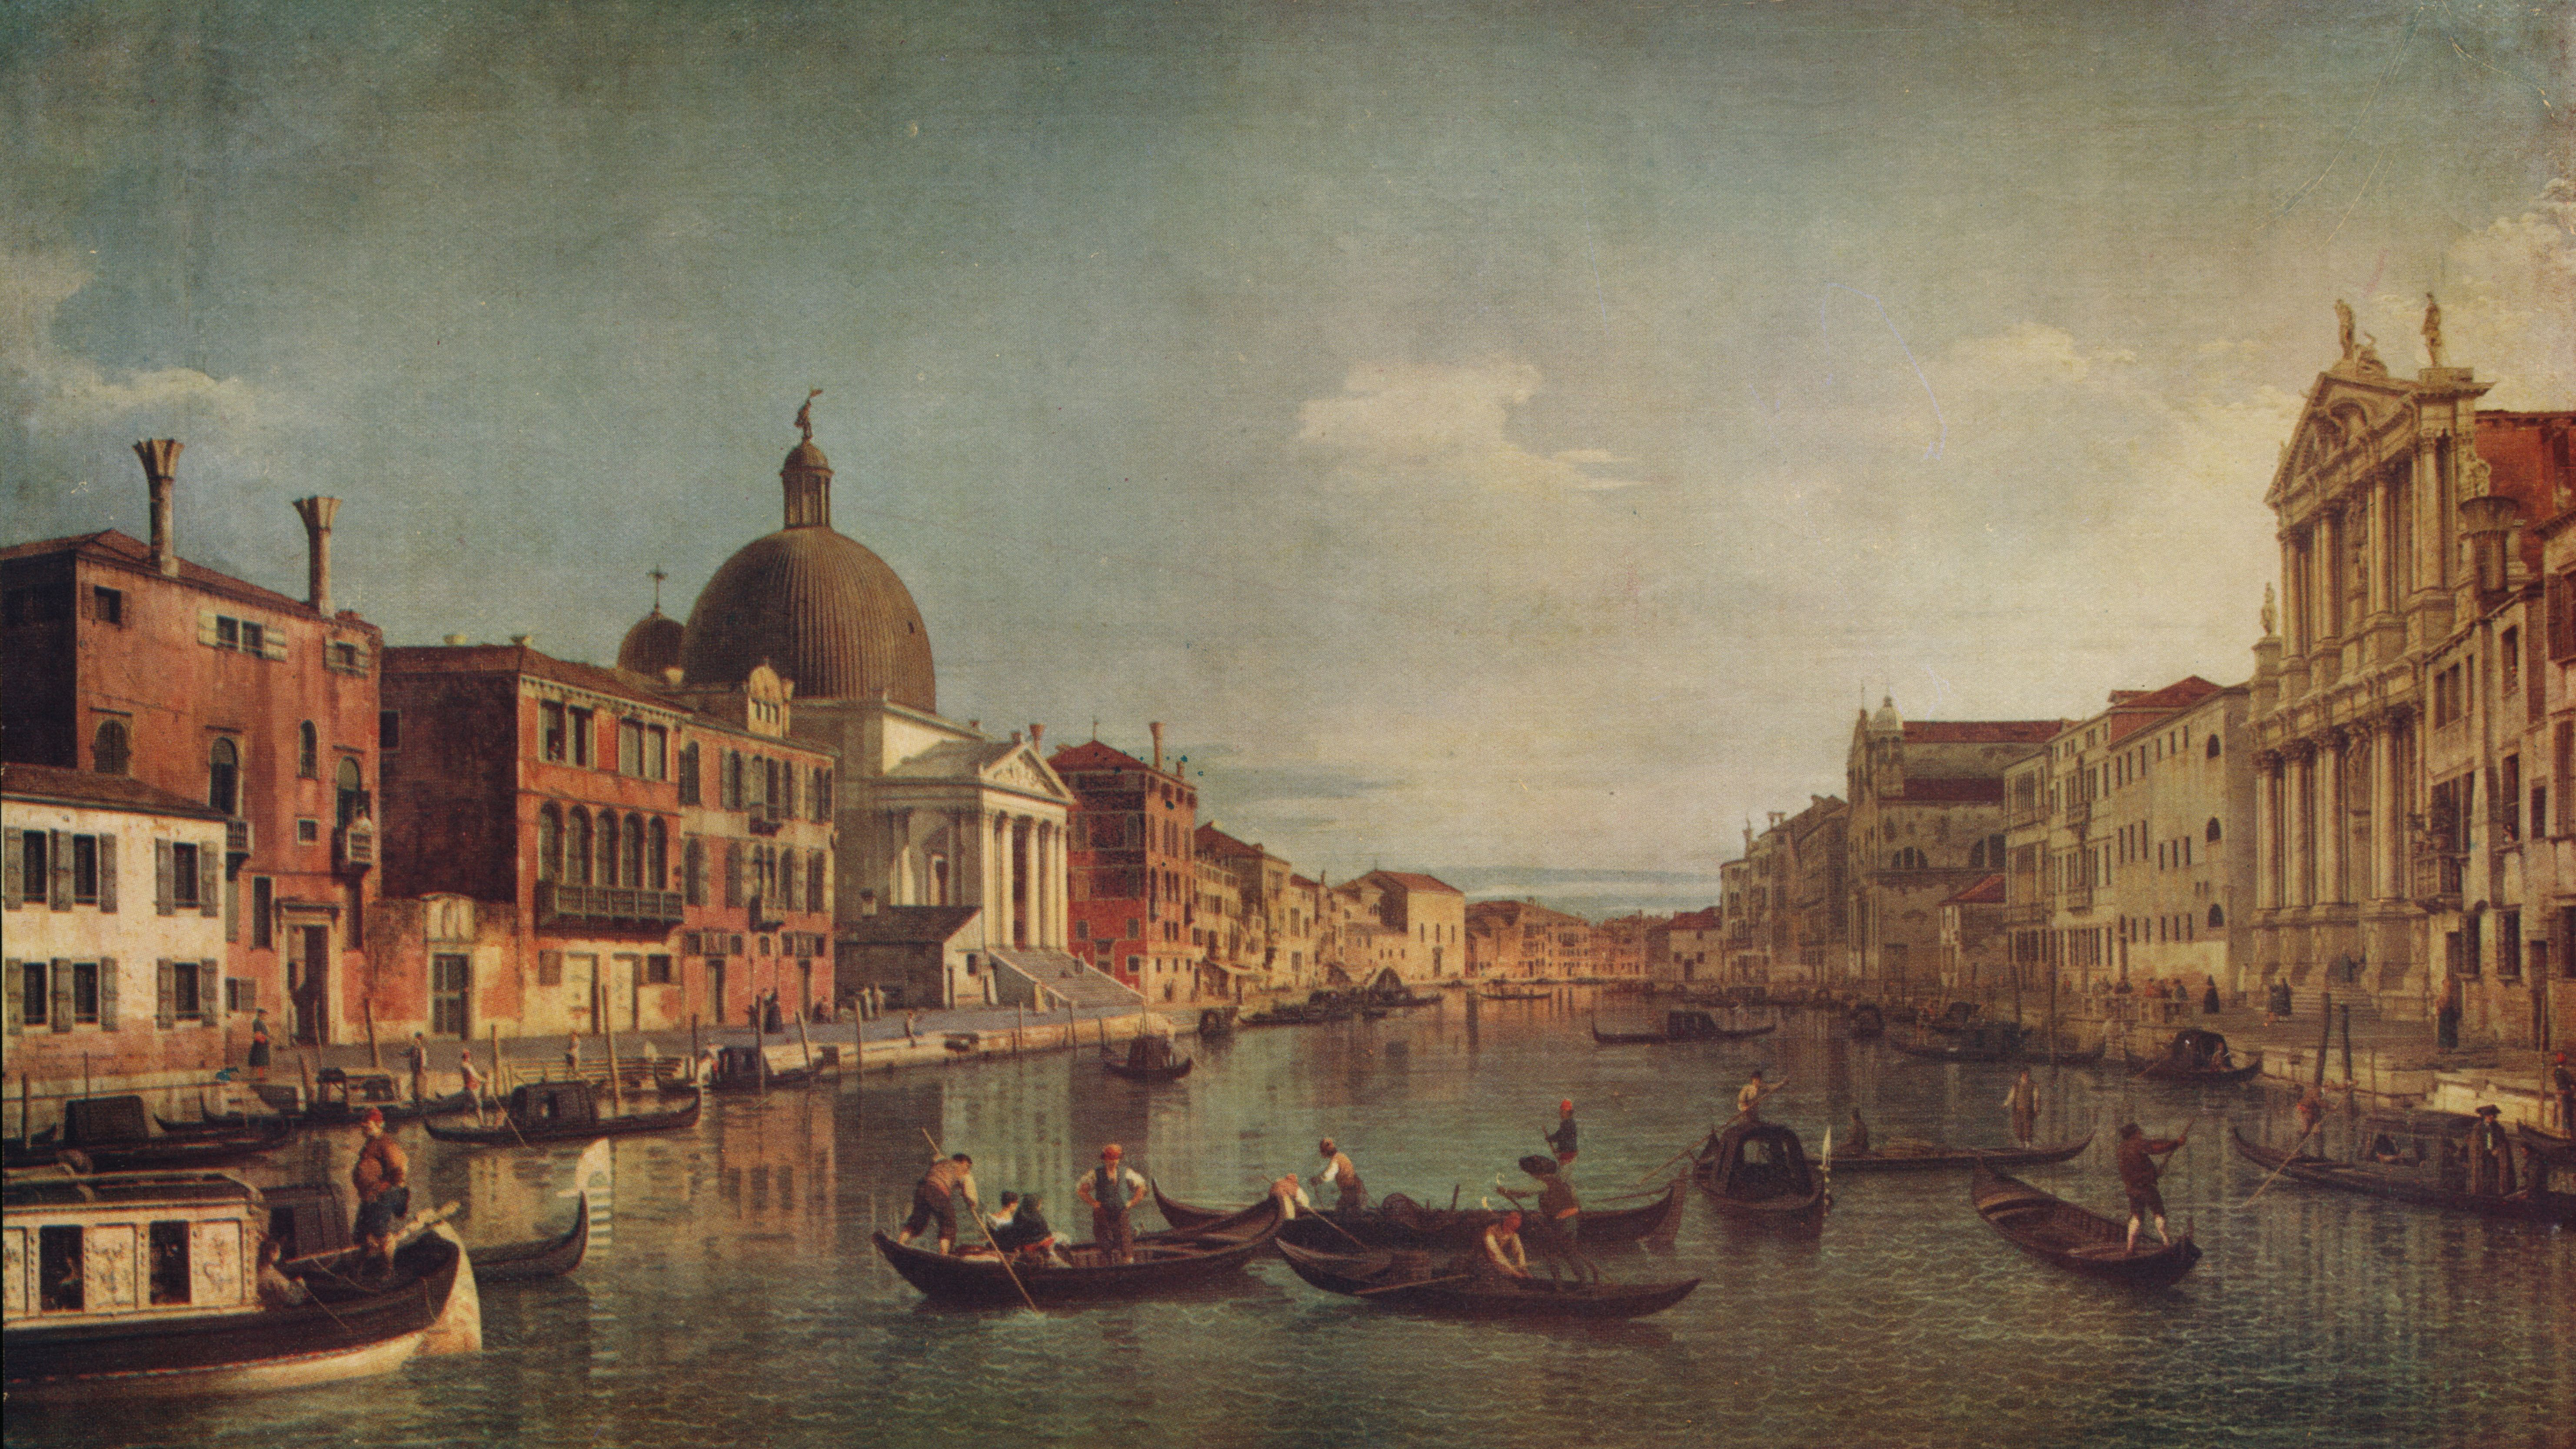 Grand Tour of Europe in the 17th and 18th Centuries